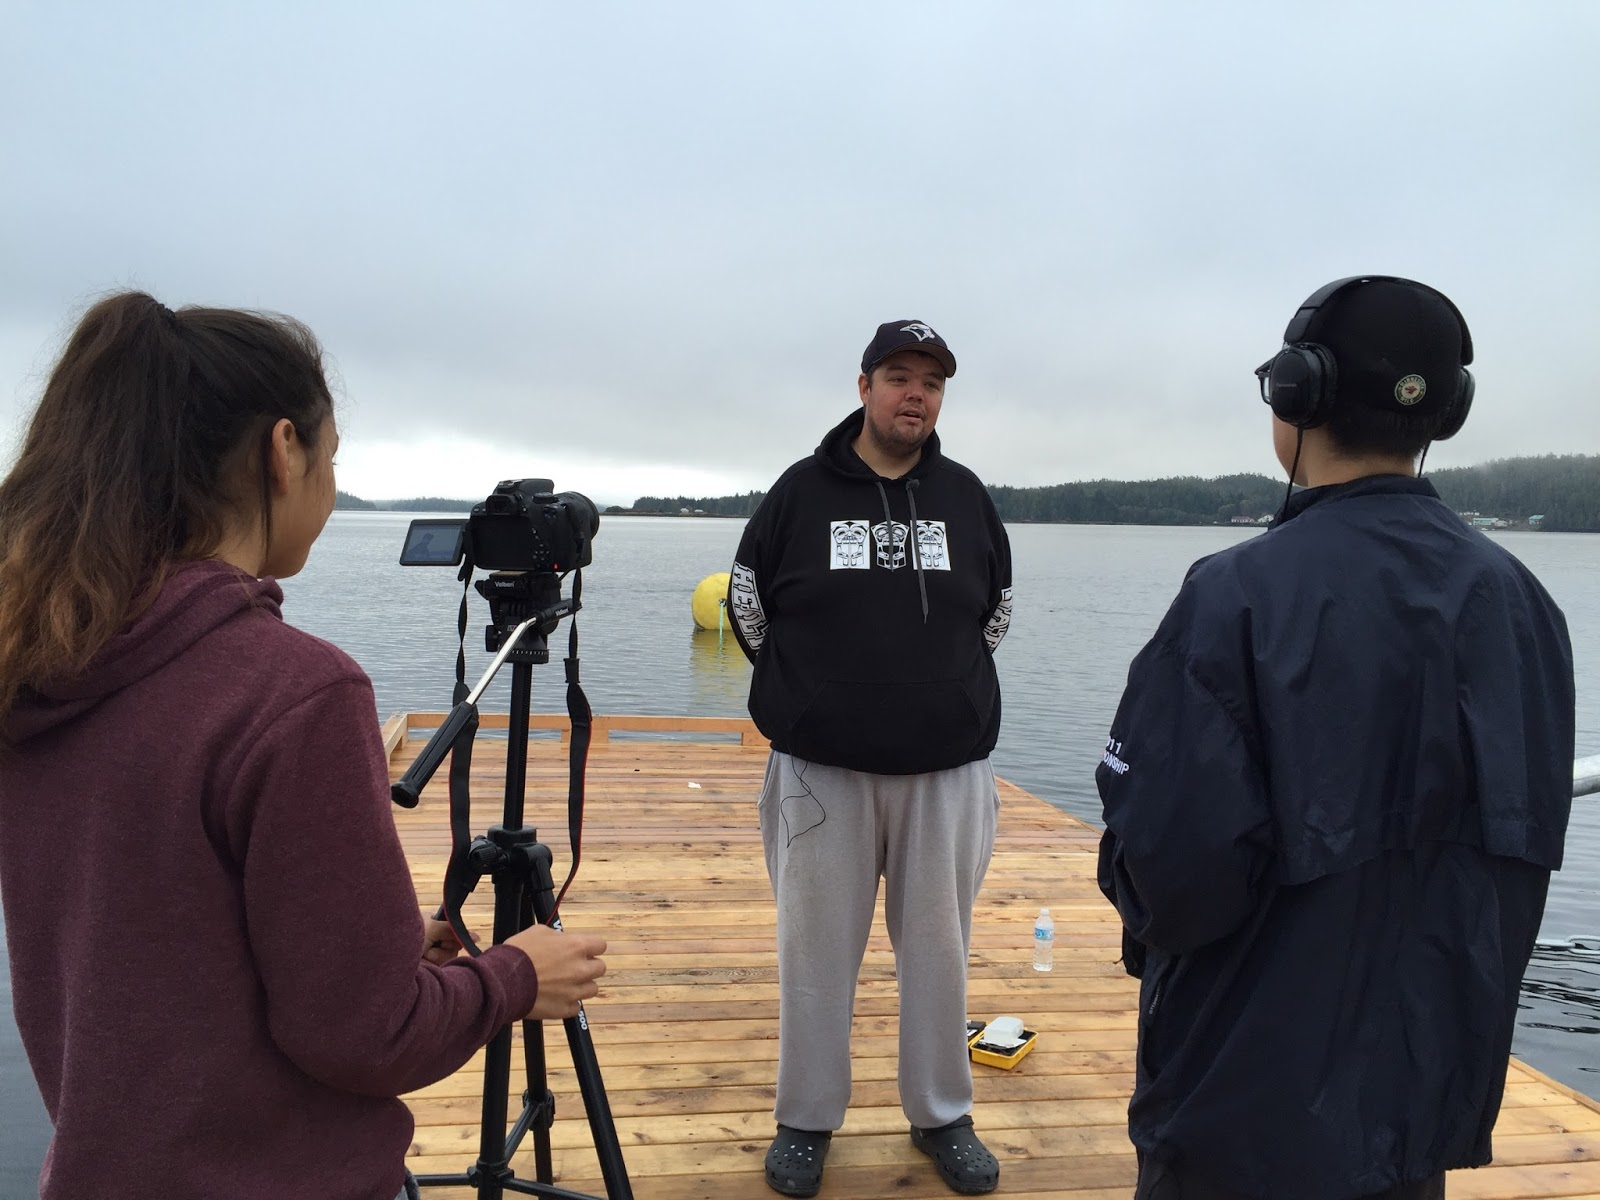 A great location for the interview with Lama Inlet in the background